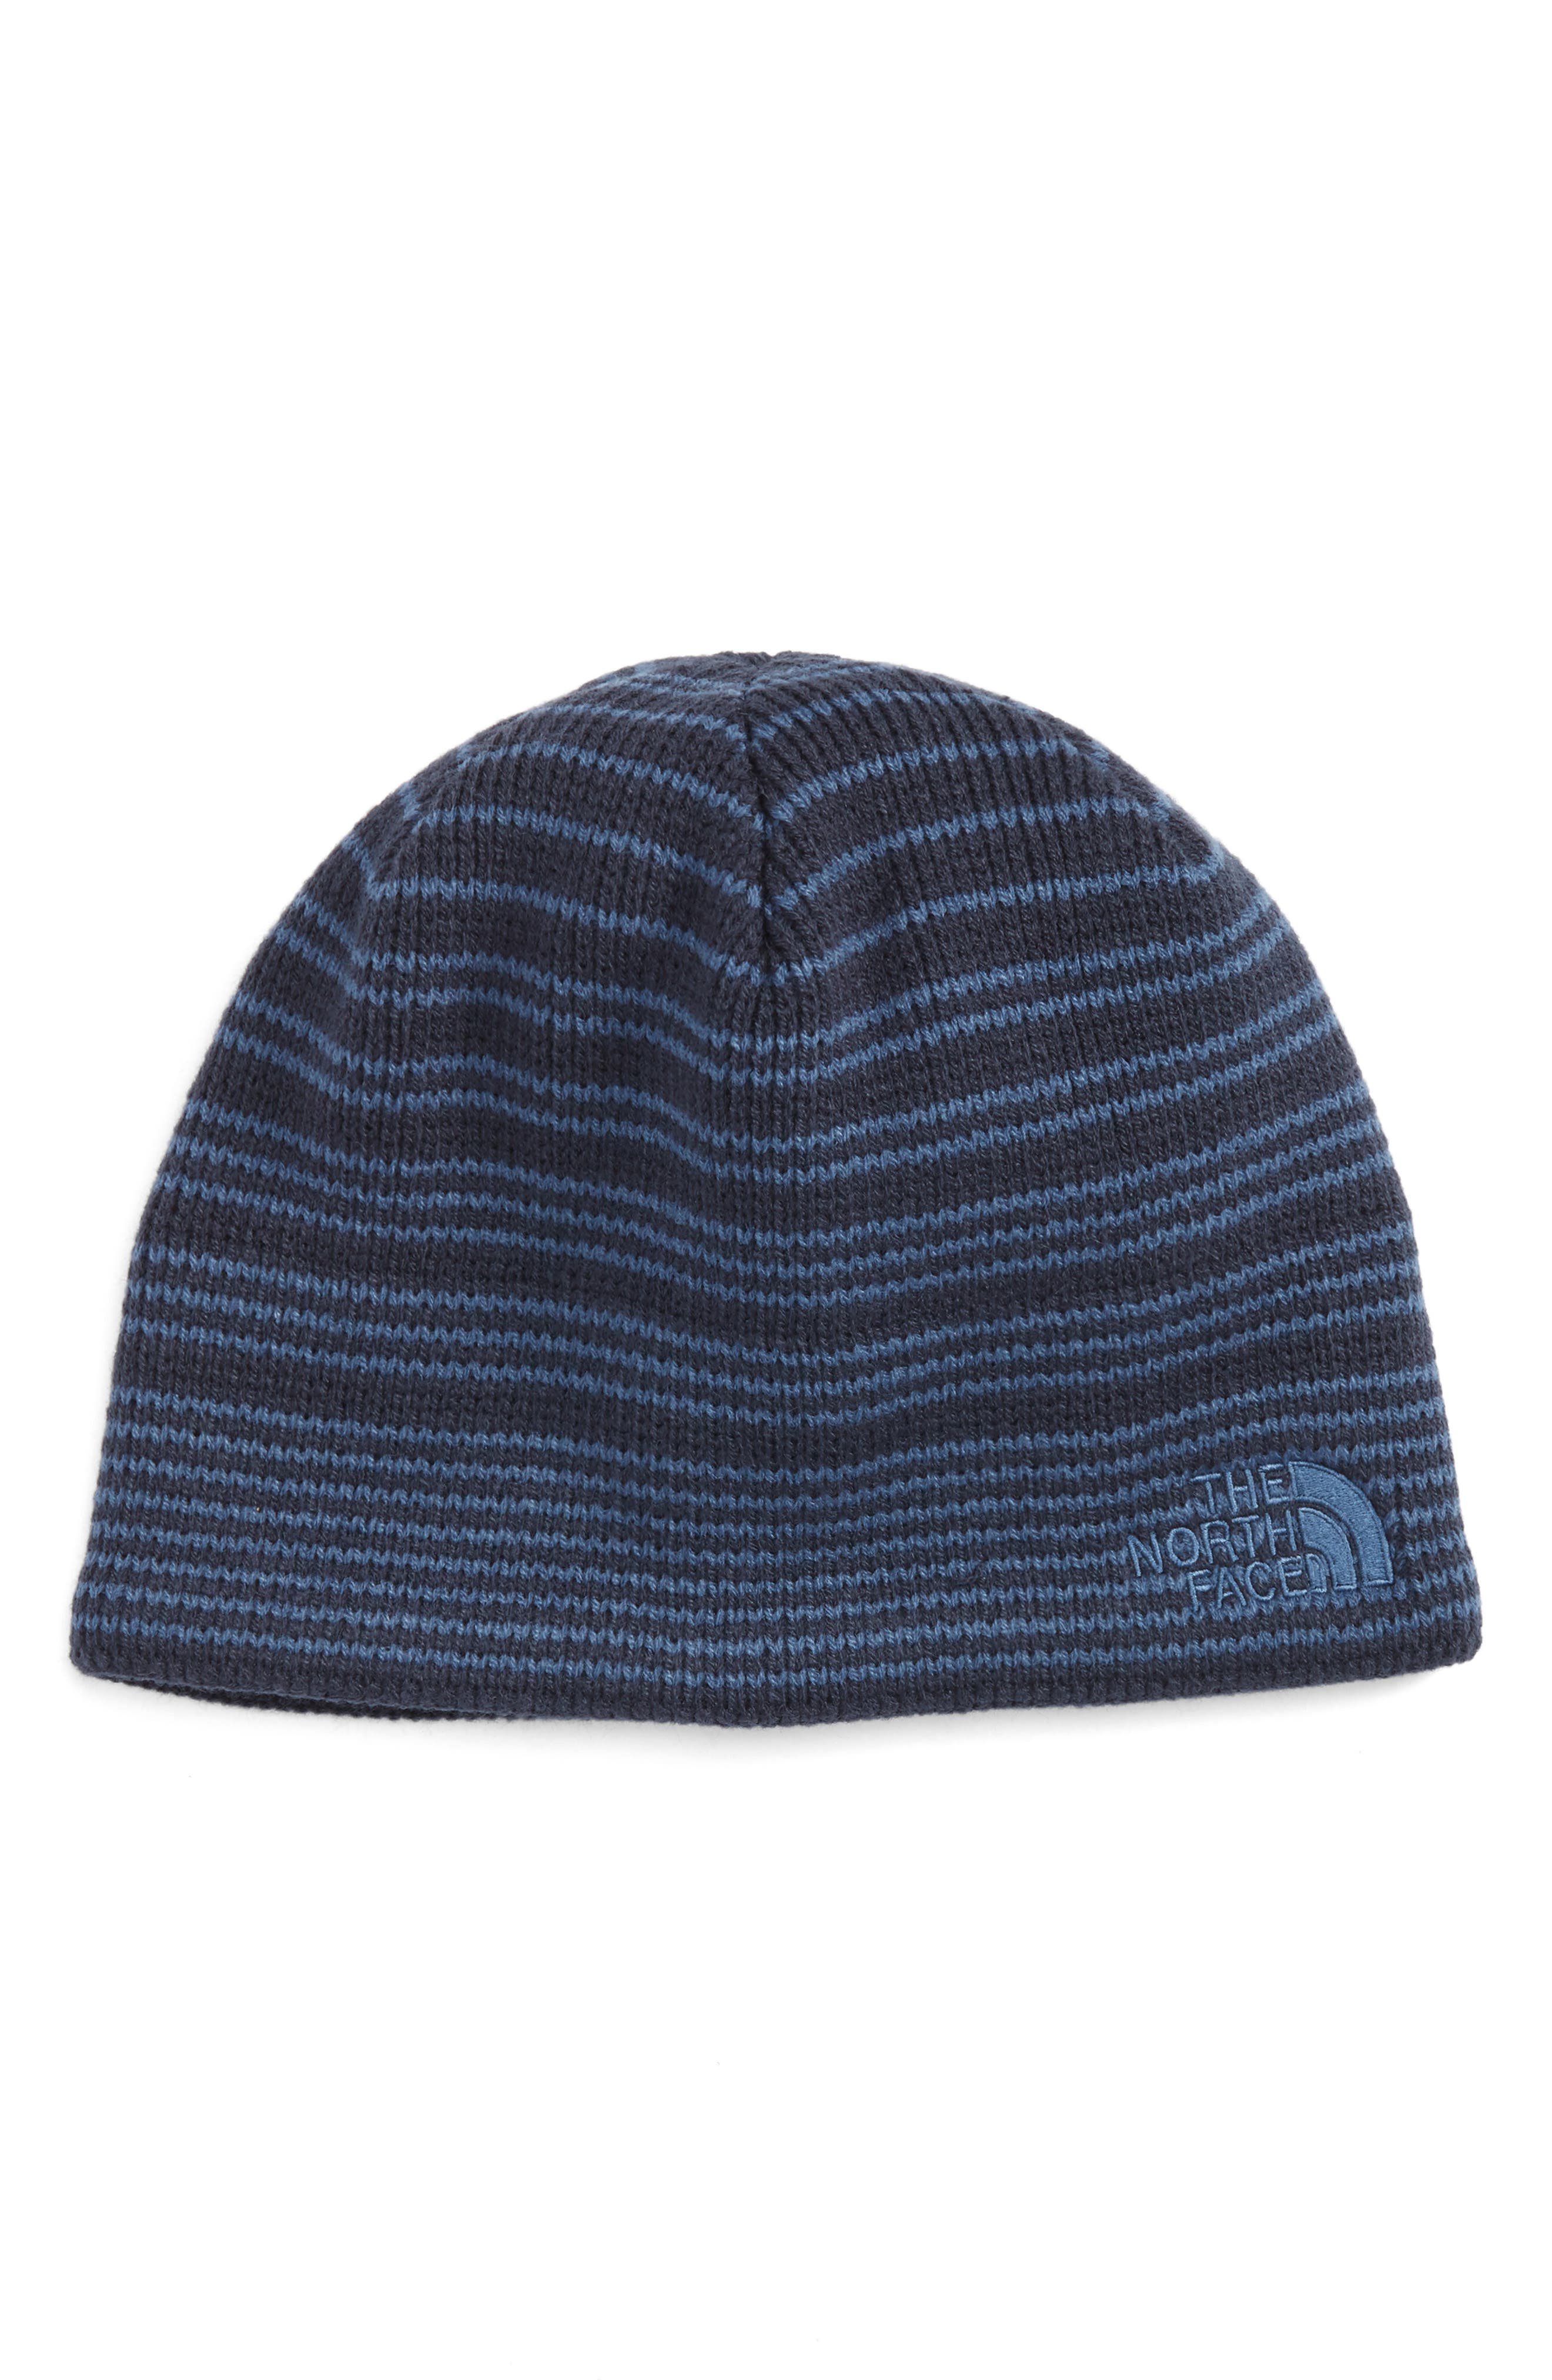 'Bones' Microfleece Beanie,                             Main thumbnail 2, color,